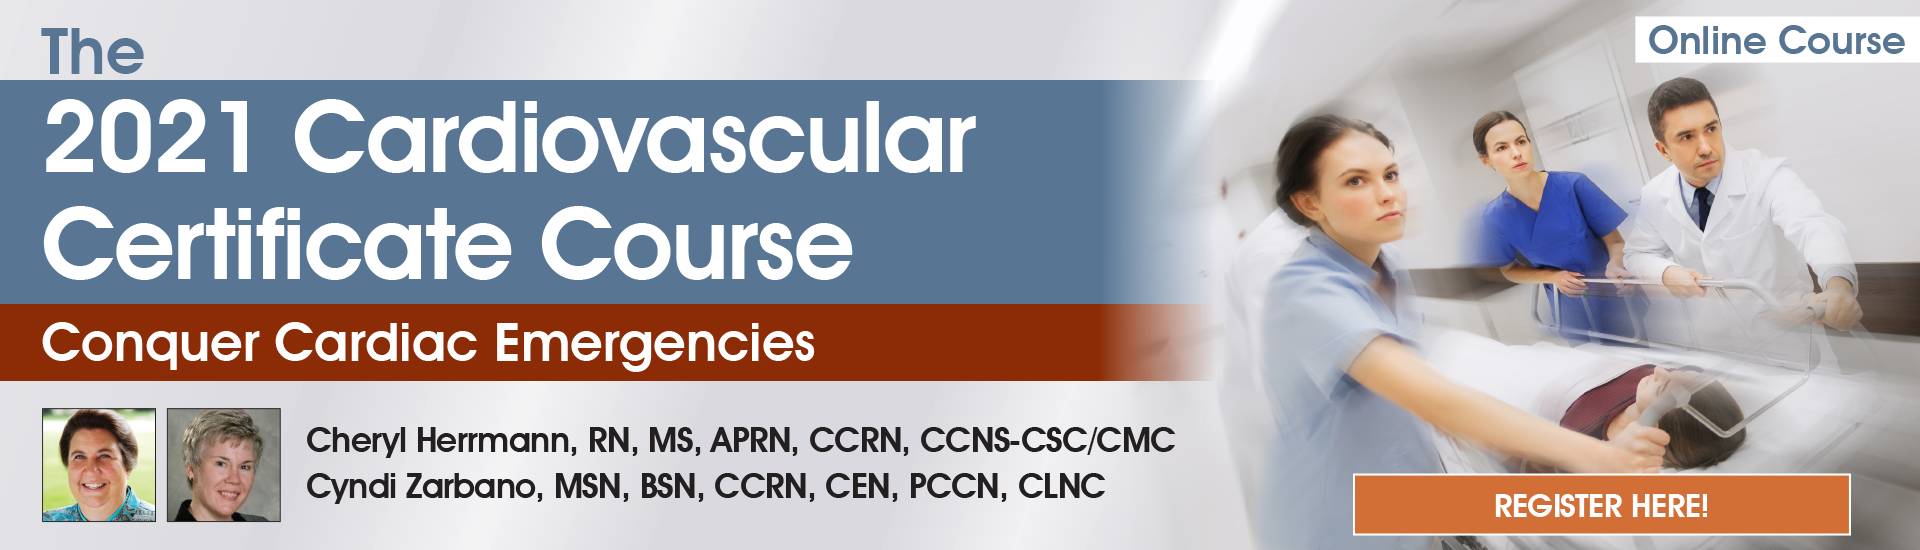 The 2021 Cardiovascular Certificate Course: Conquer Cardiac Emergencies